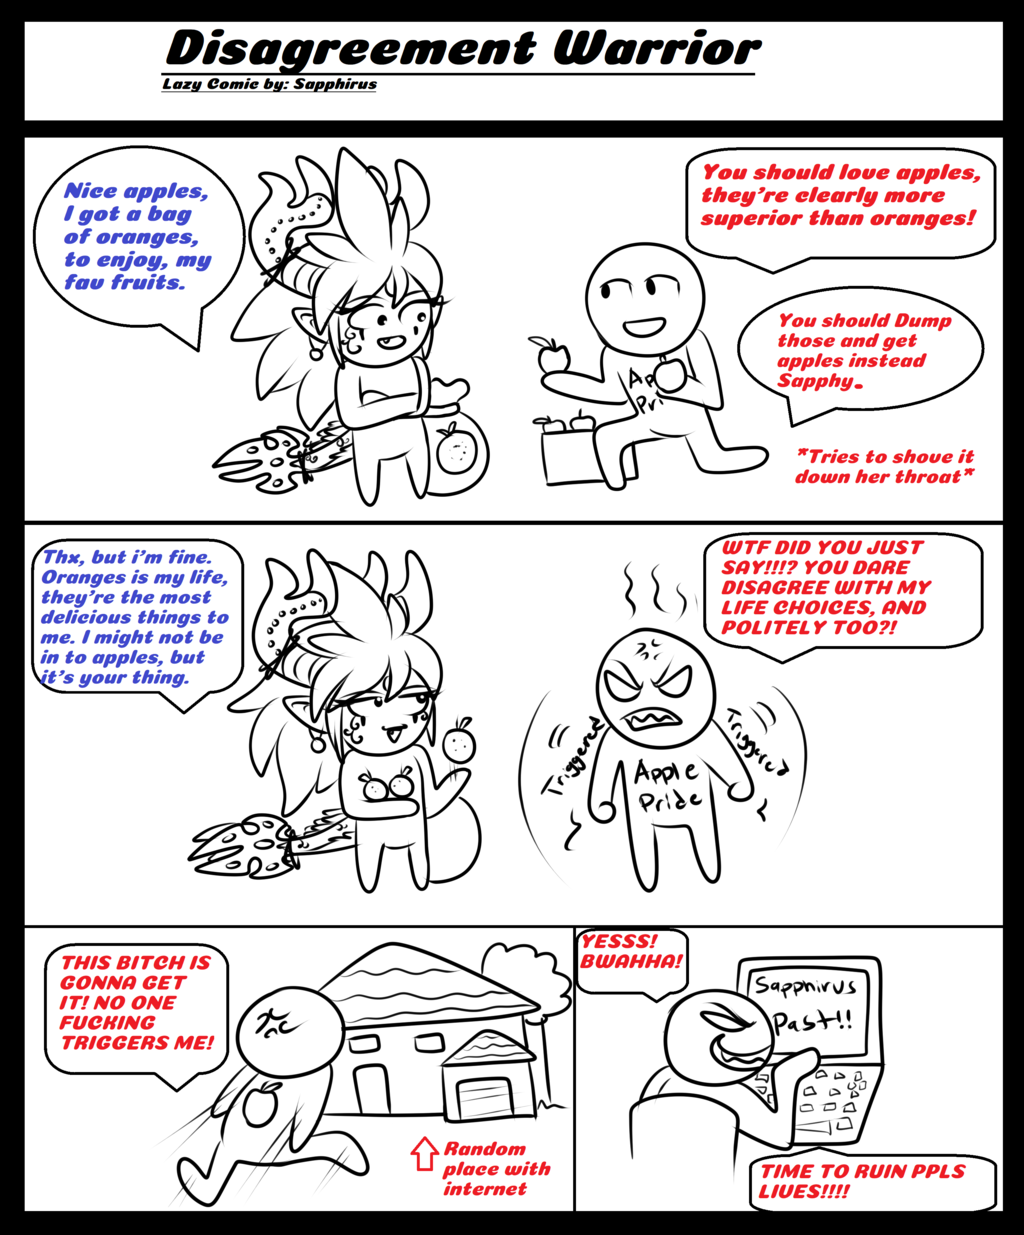 Disagreement Warrior +Parody comic+